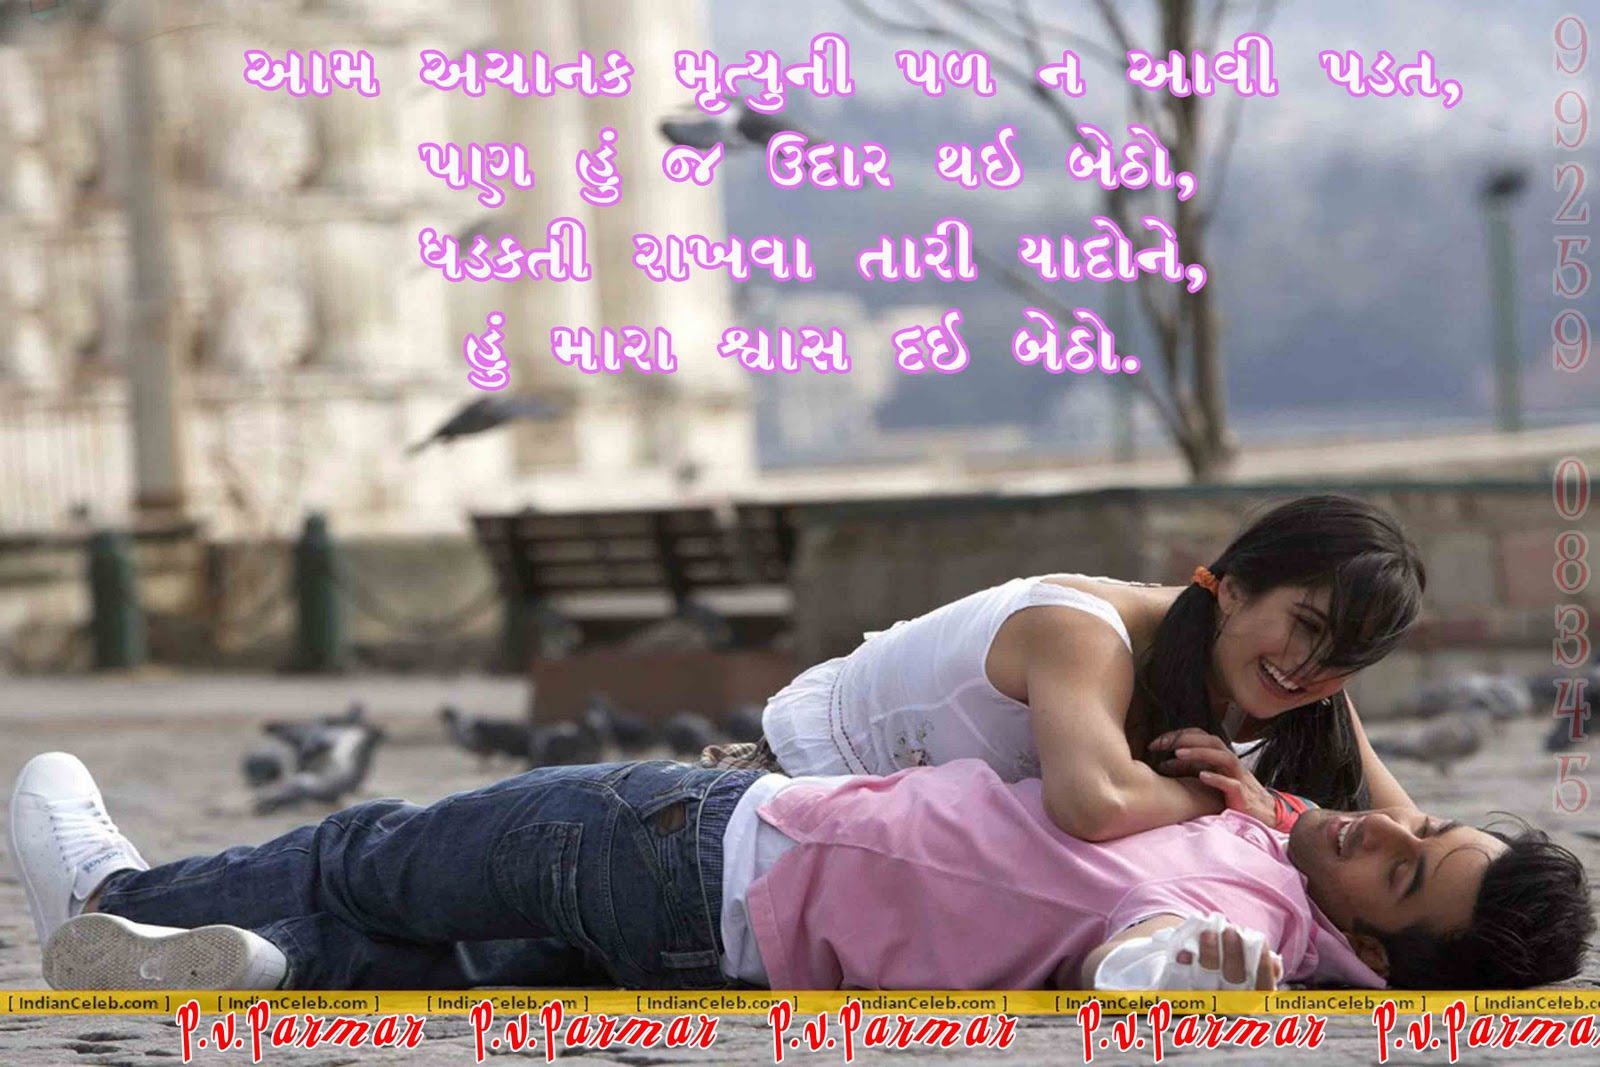 gujarati shayari with combination of wallpaper